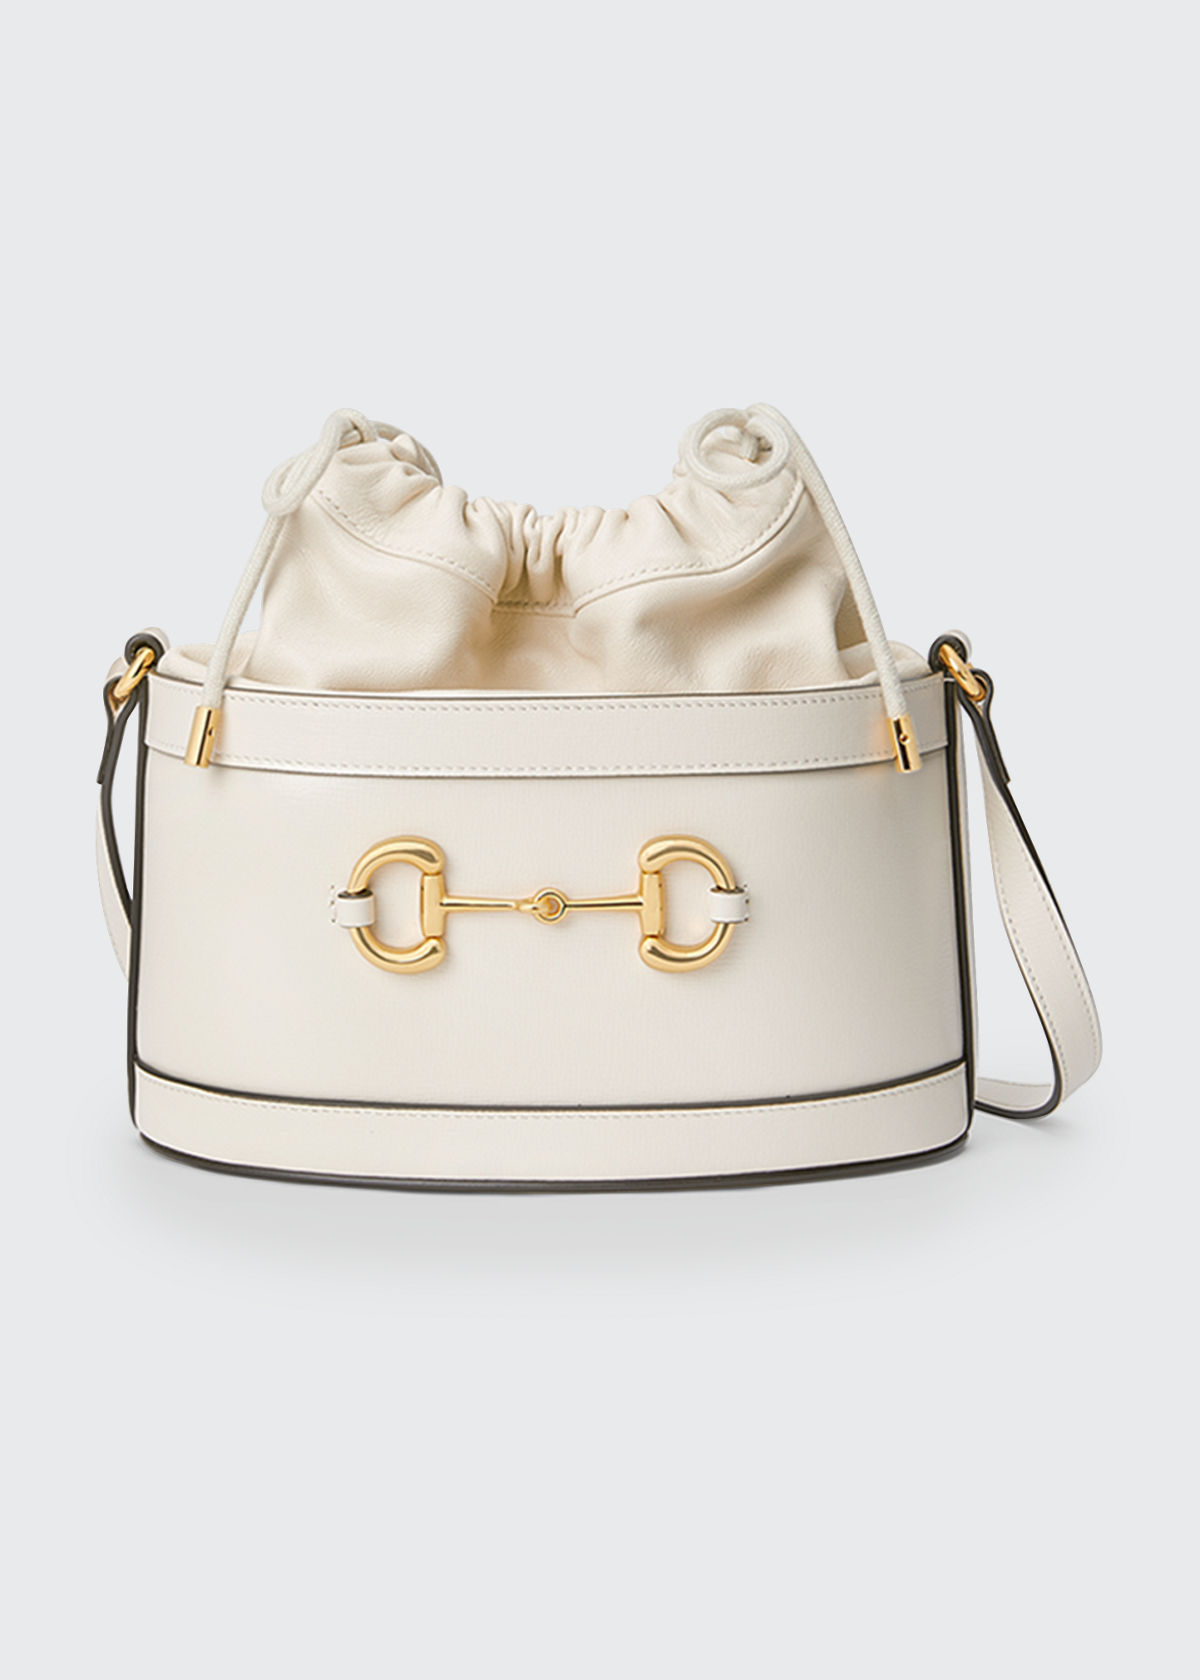 Gucci Shoulder 1955 MORSETTO MINI HORSEBIT LEATHER SHOULDER BAG